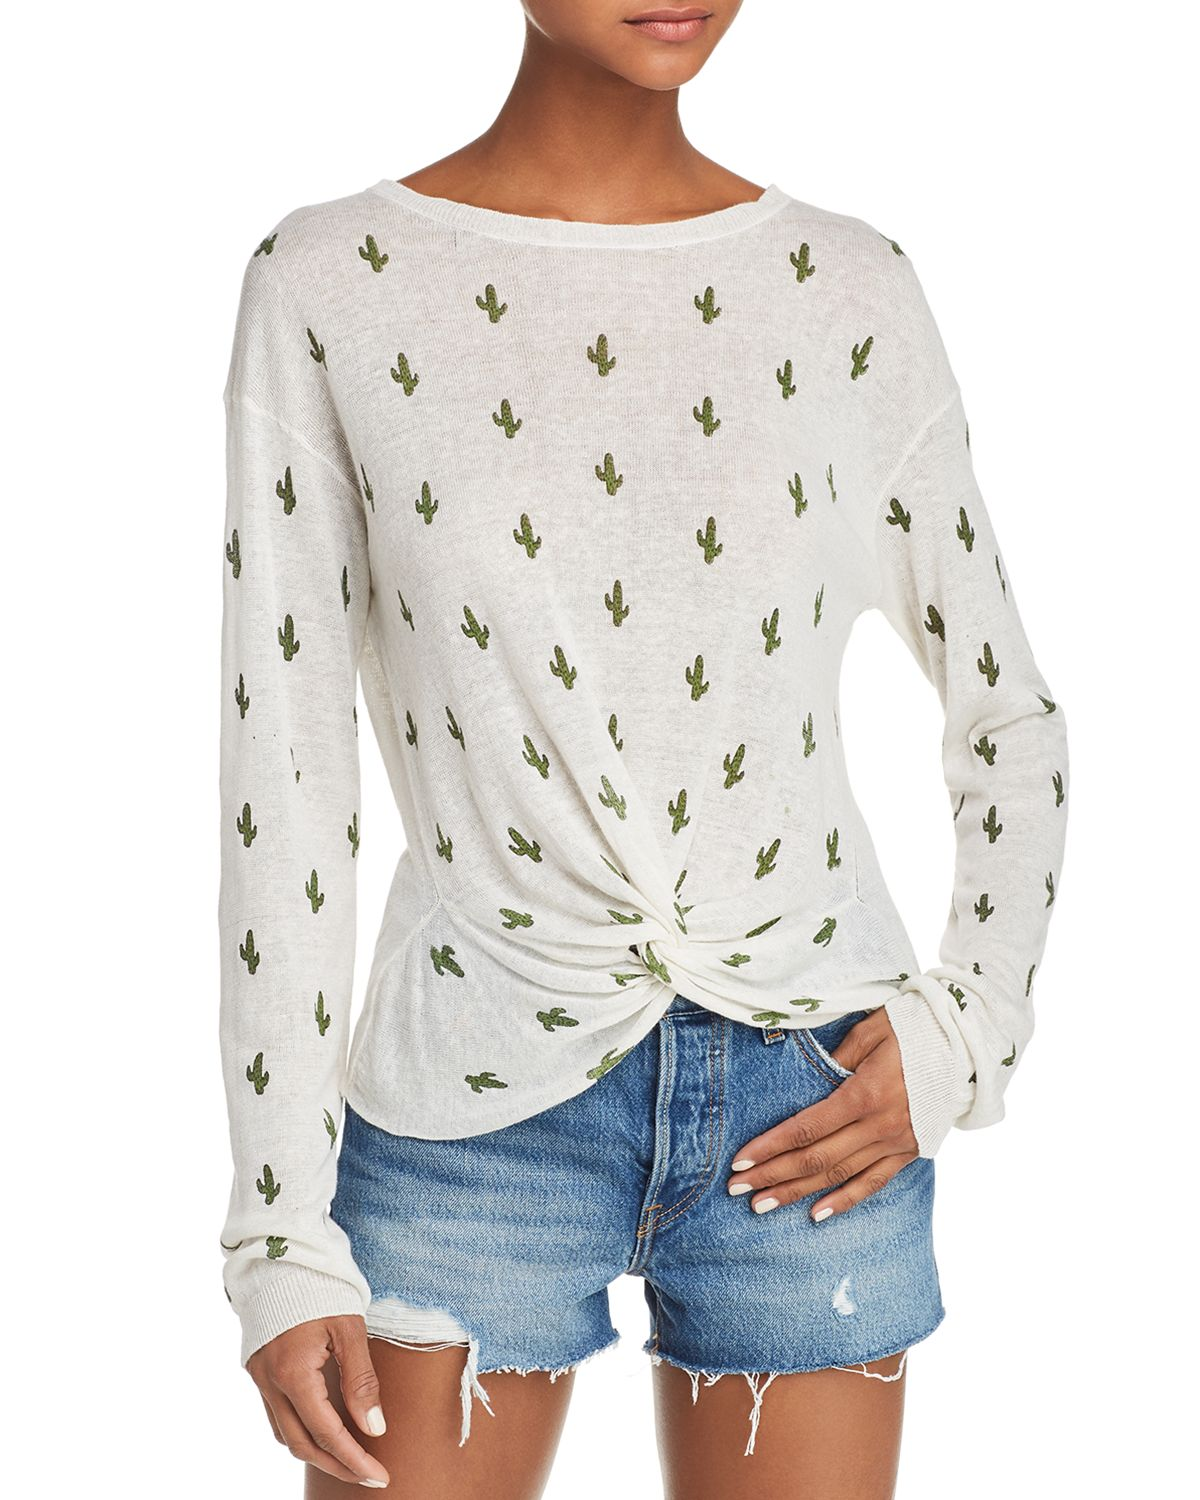 Cactus Print Twist Front Sweater   100% Exclusive  by Aqua